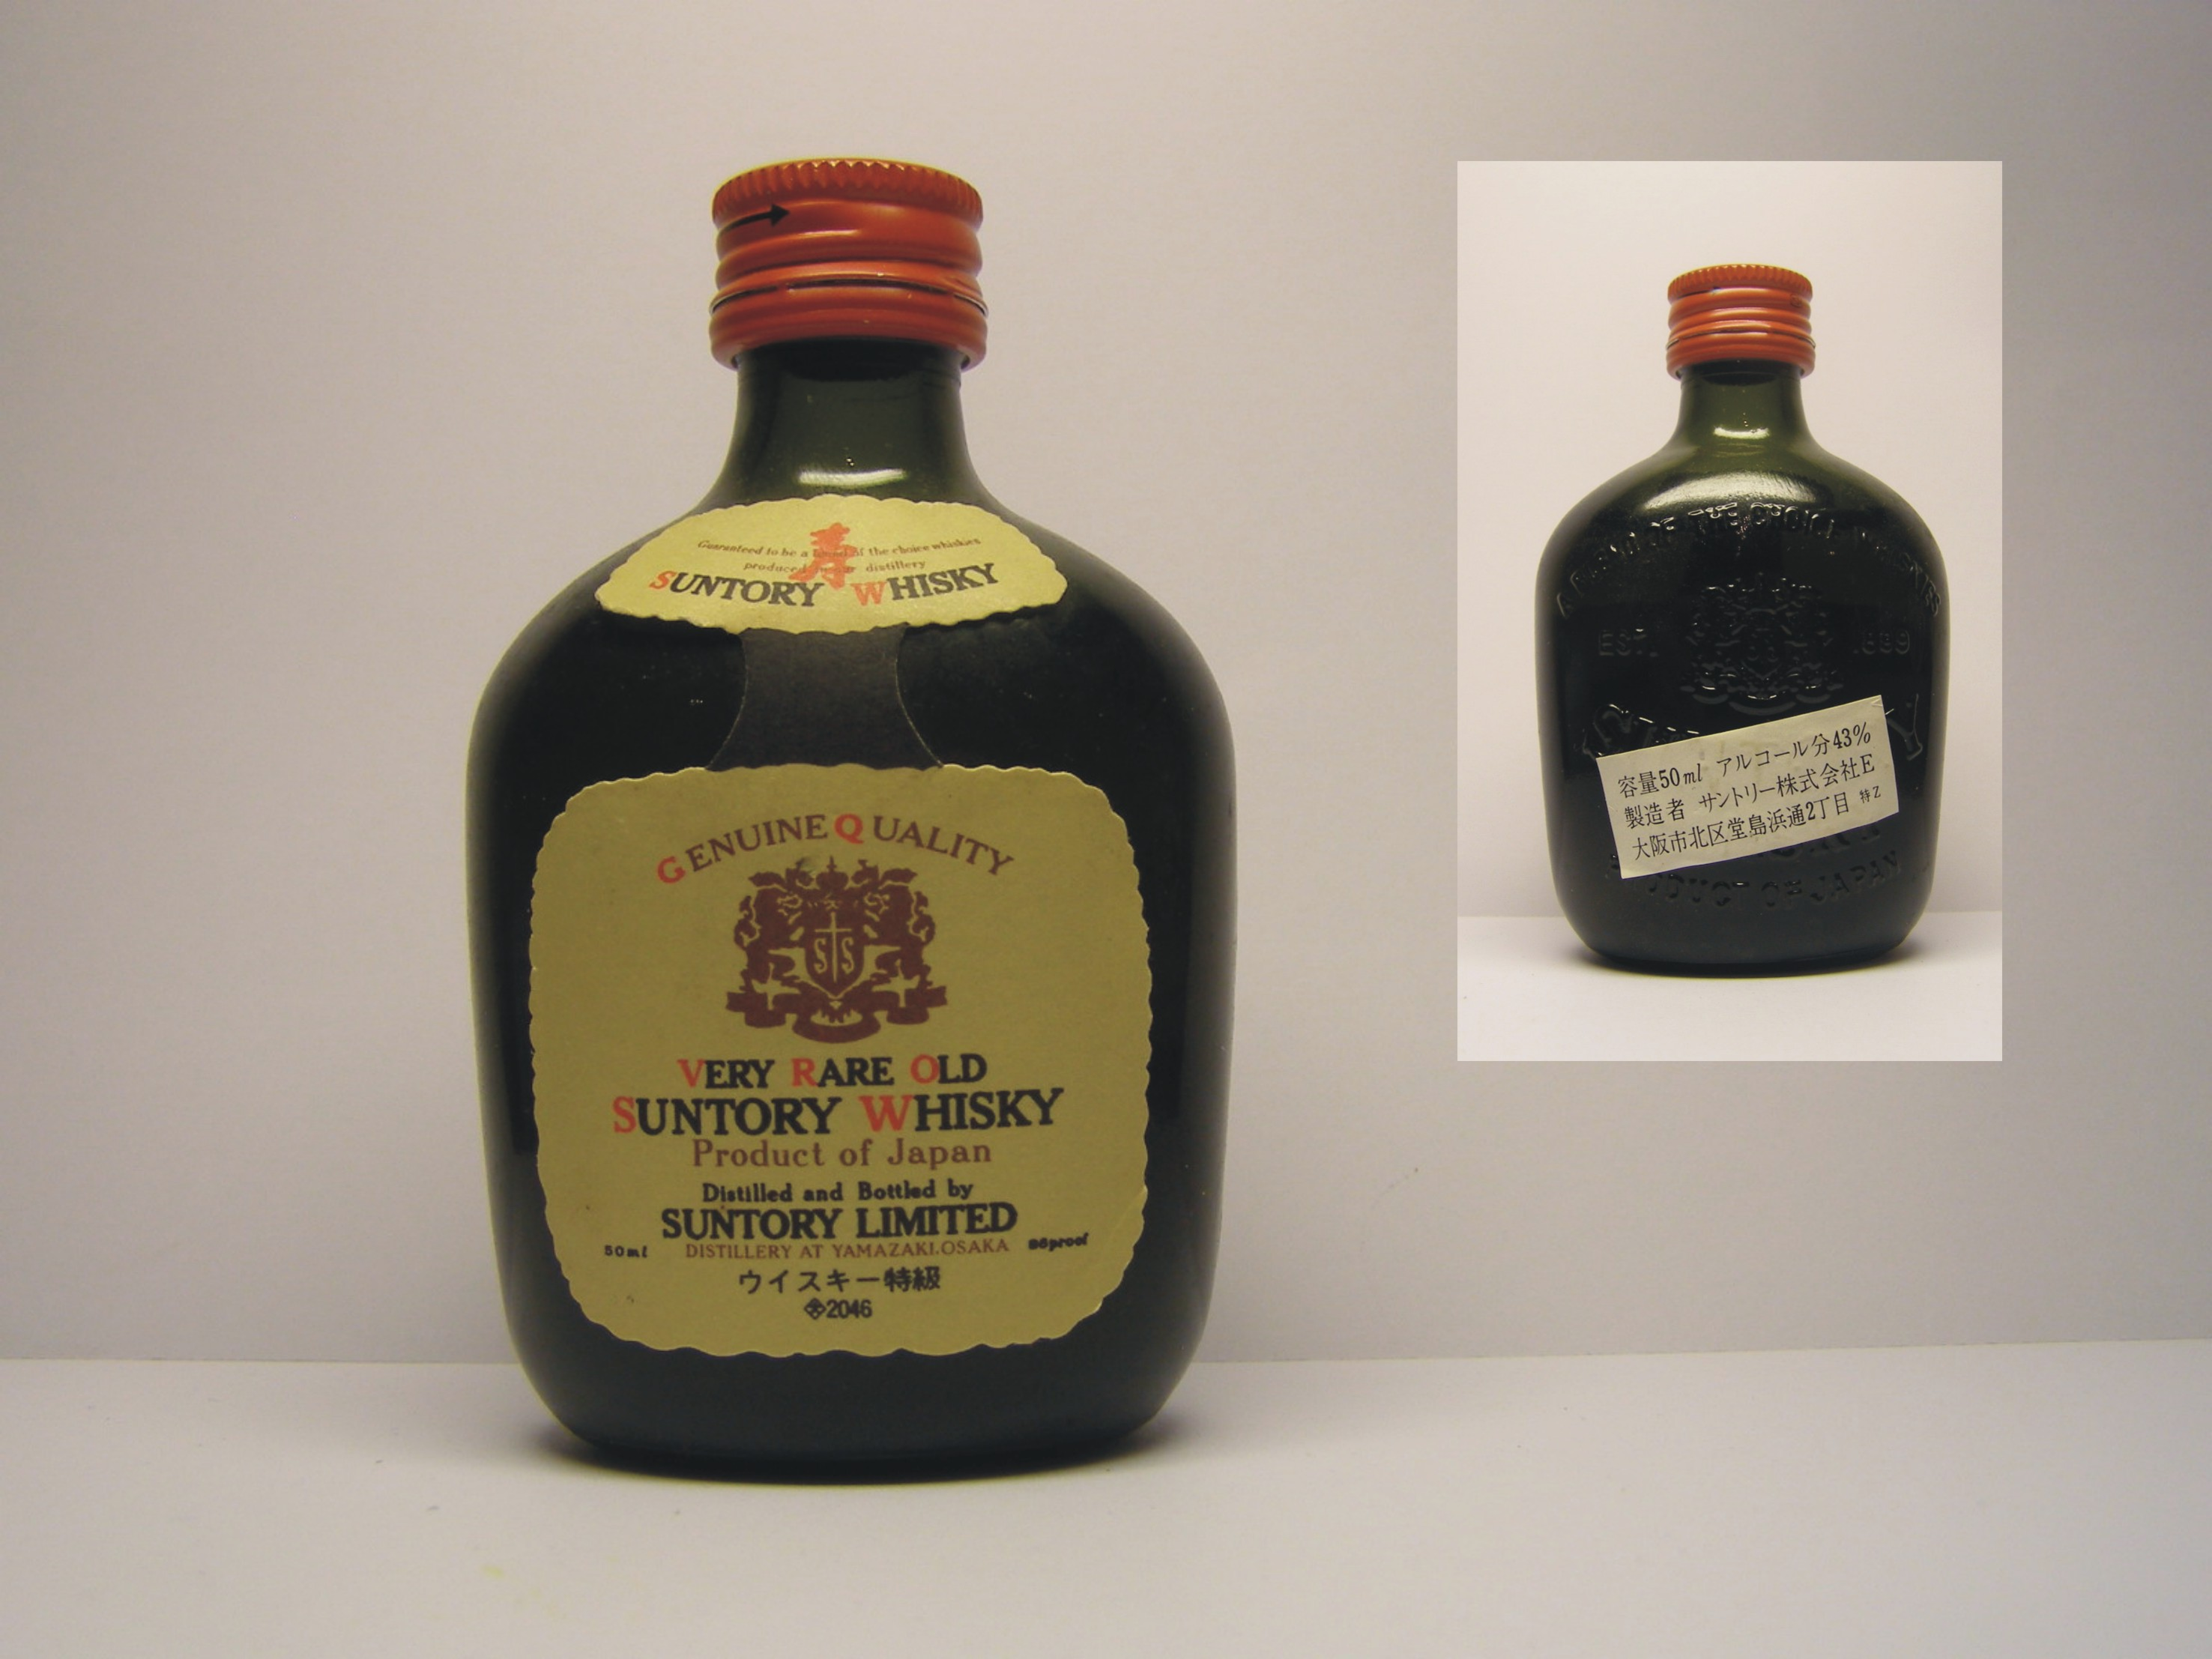 SUNTORY Very Rare Old Whisky